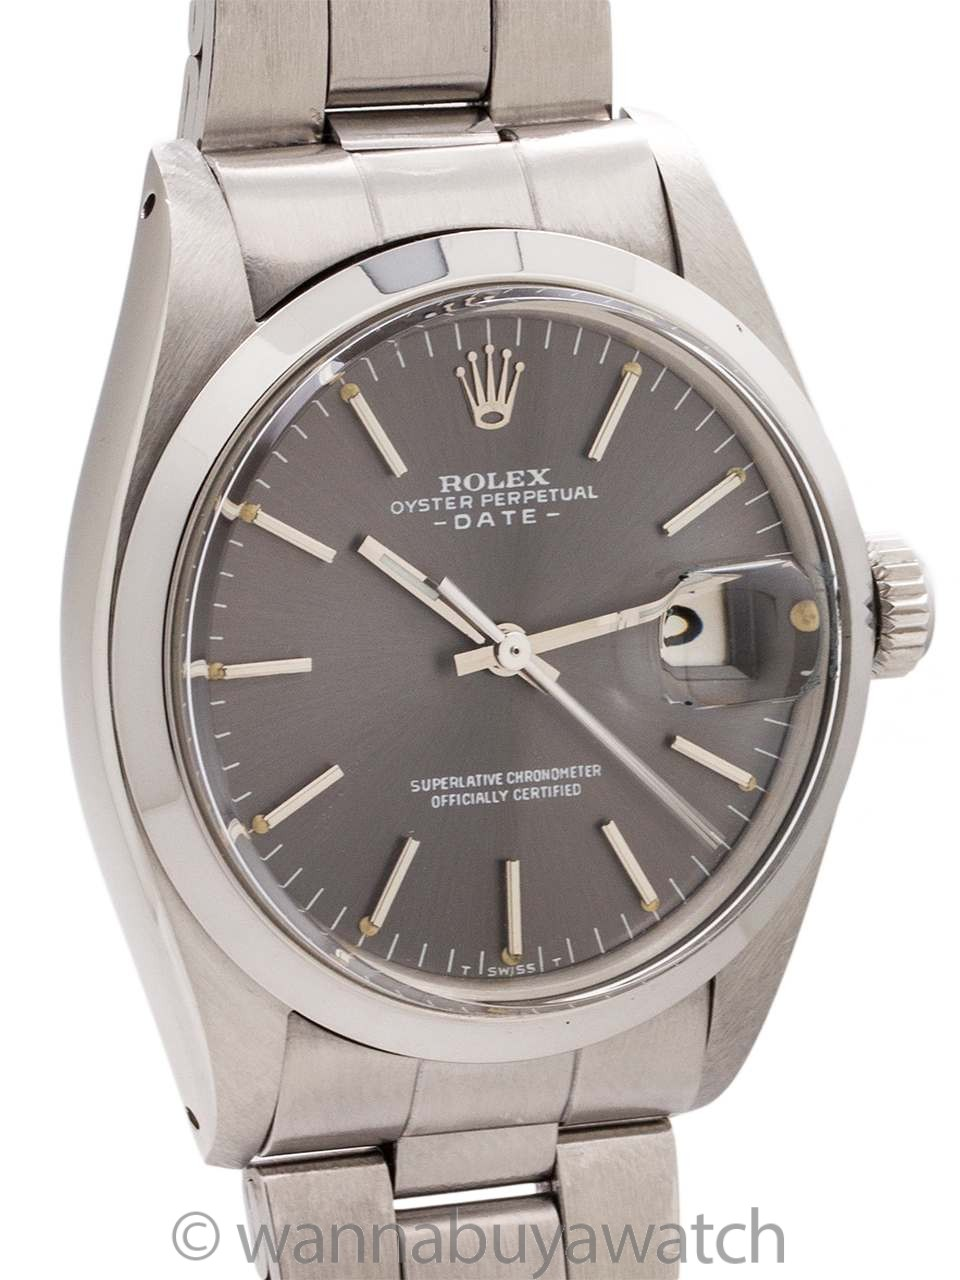 Rolex Oyster Perpetual Date ref 1500 Gray Dial circa 1970